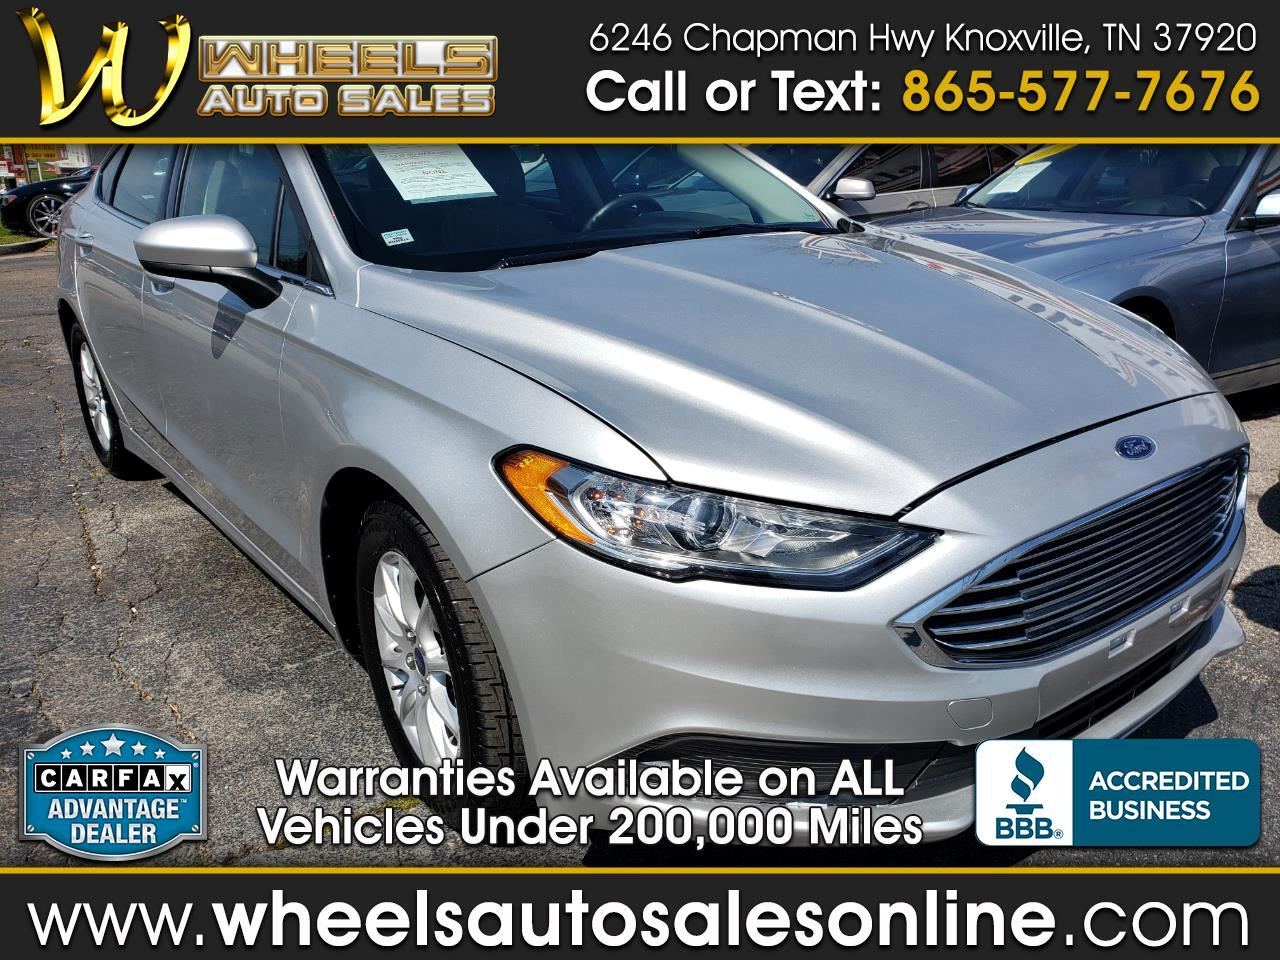 2017 Ford Fusion 4dr Sdn I4 S FWD